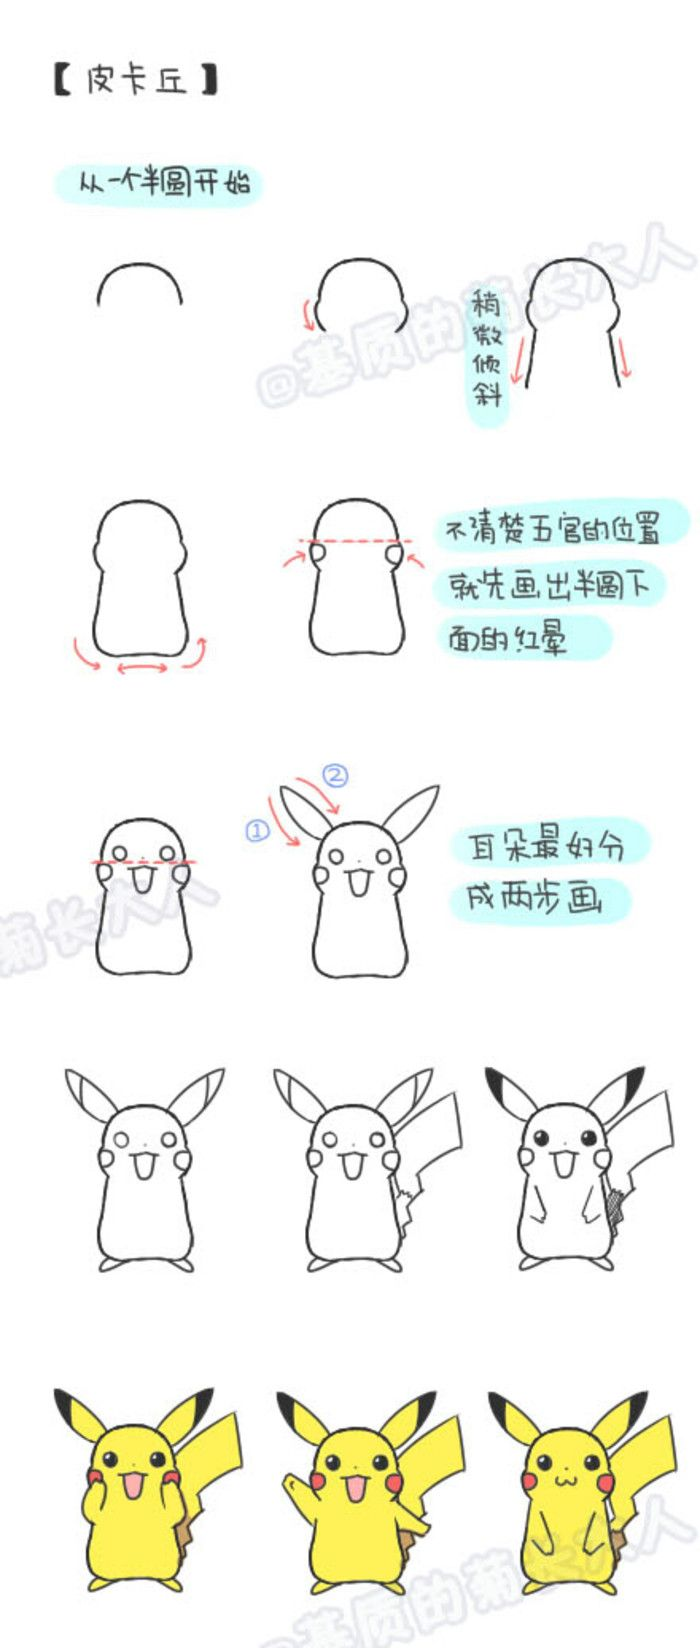 How to draw pikachu ju matrix grew from people more